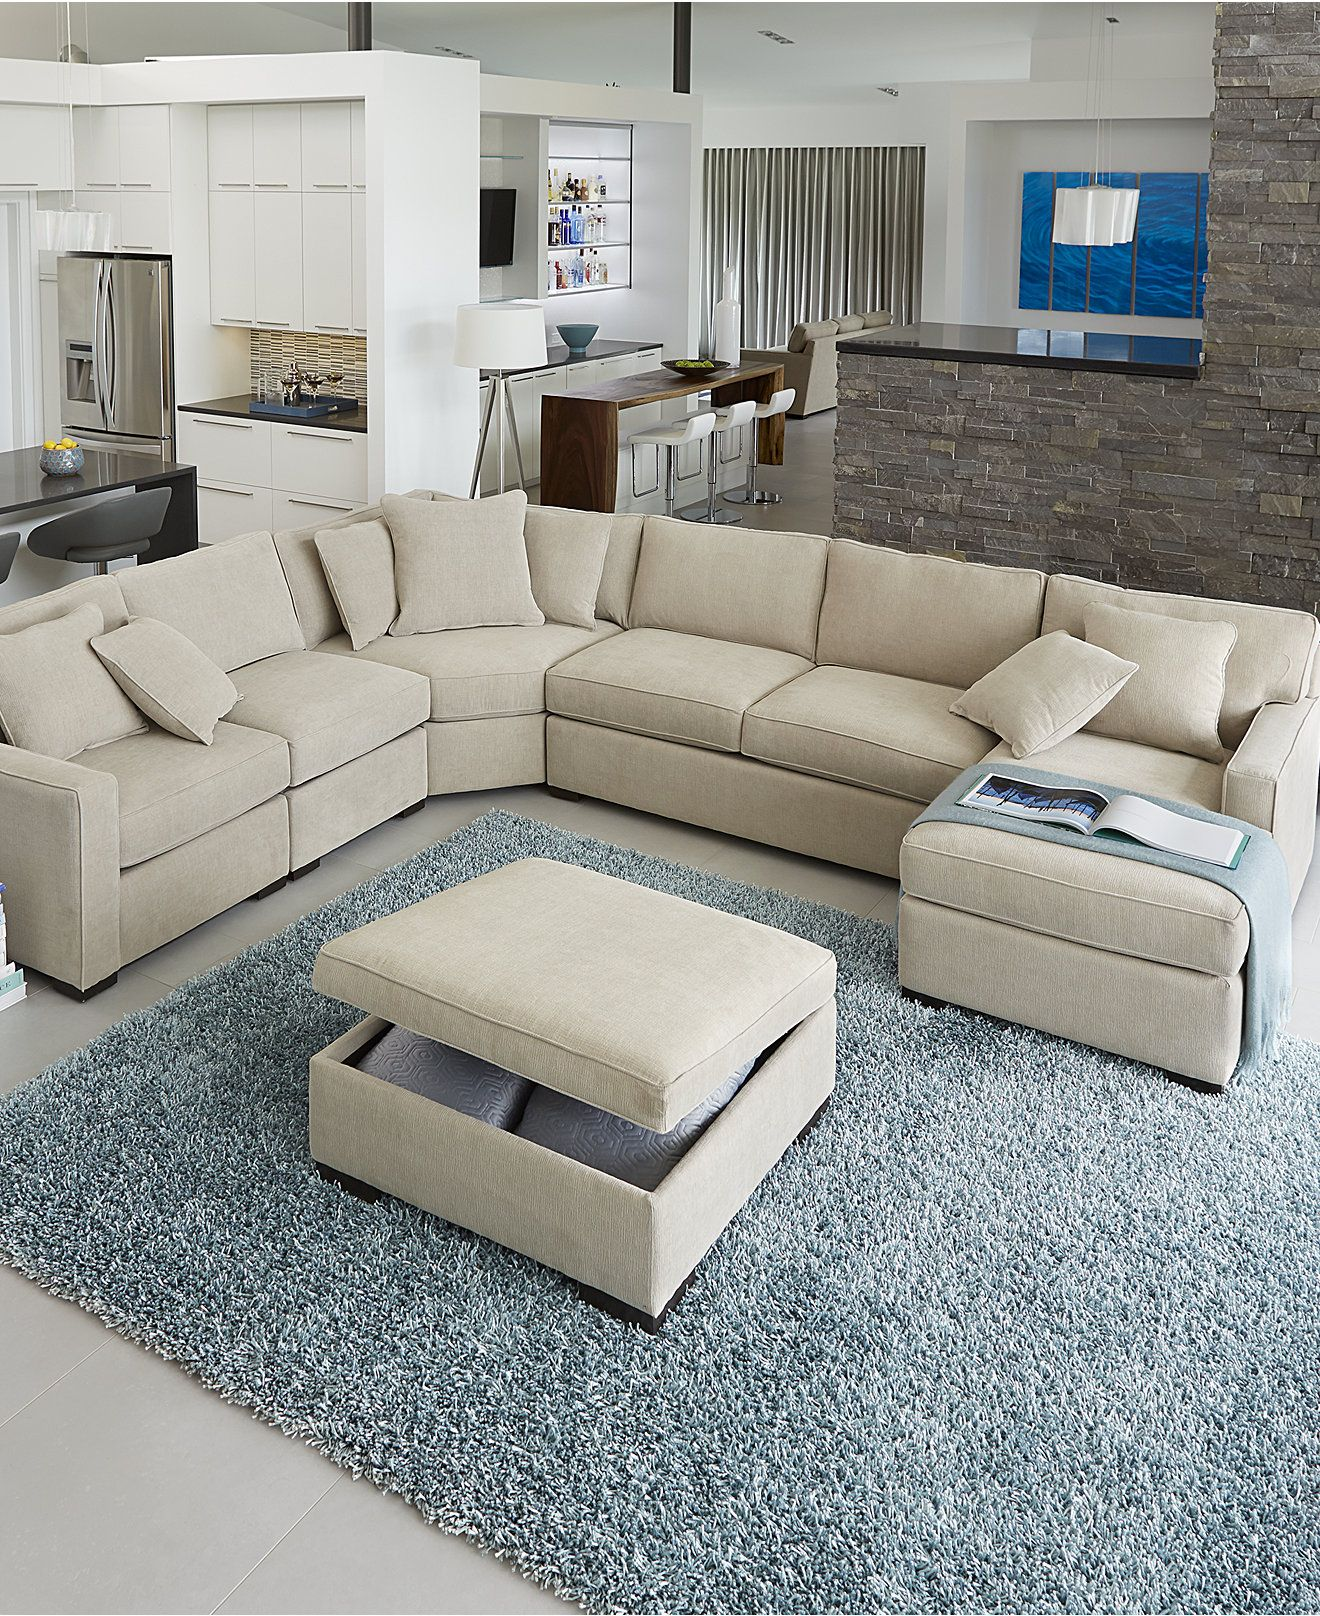 Radley Fabric Sectional Sofa Collection Created For Macy S In 2019